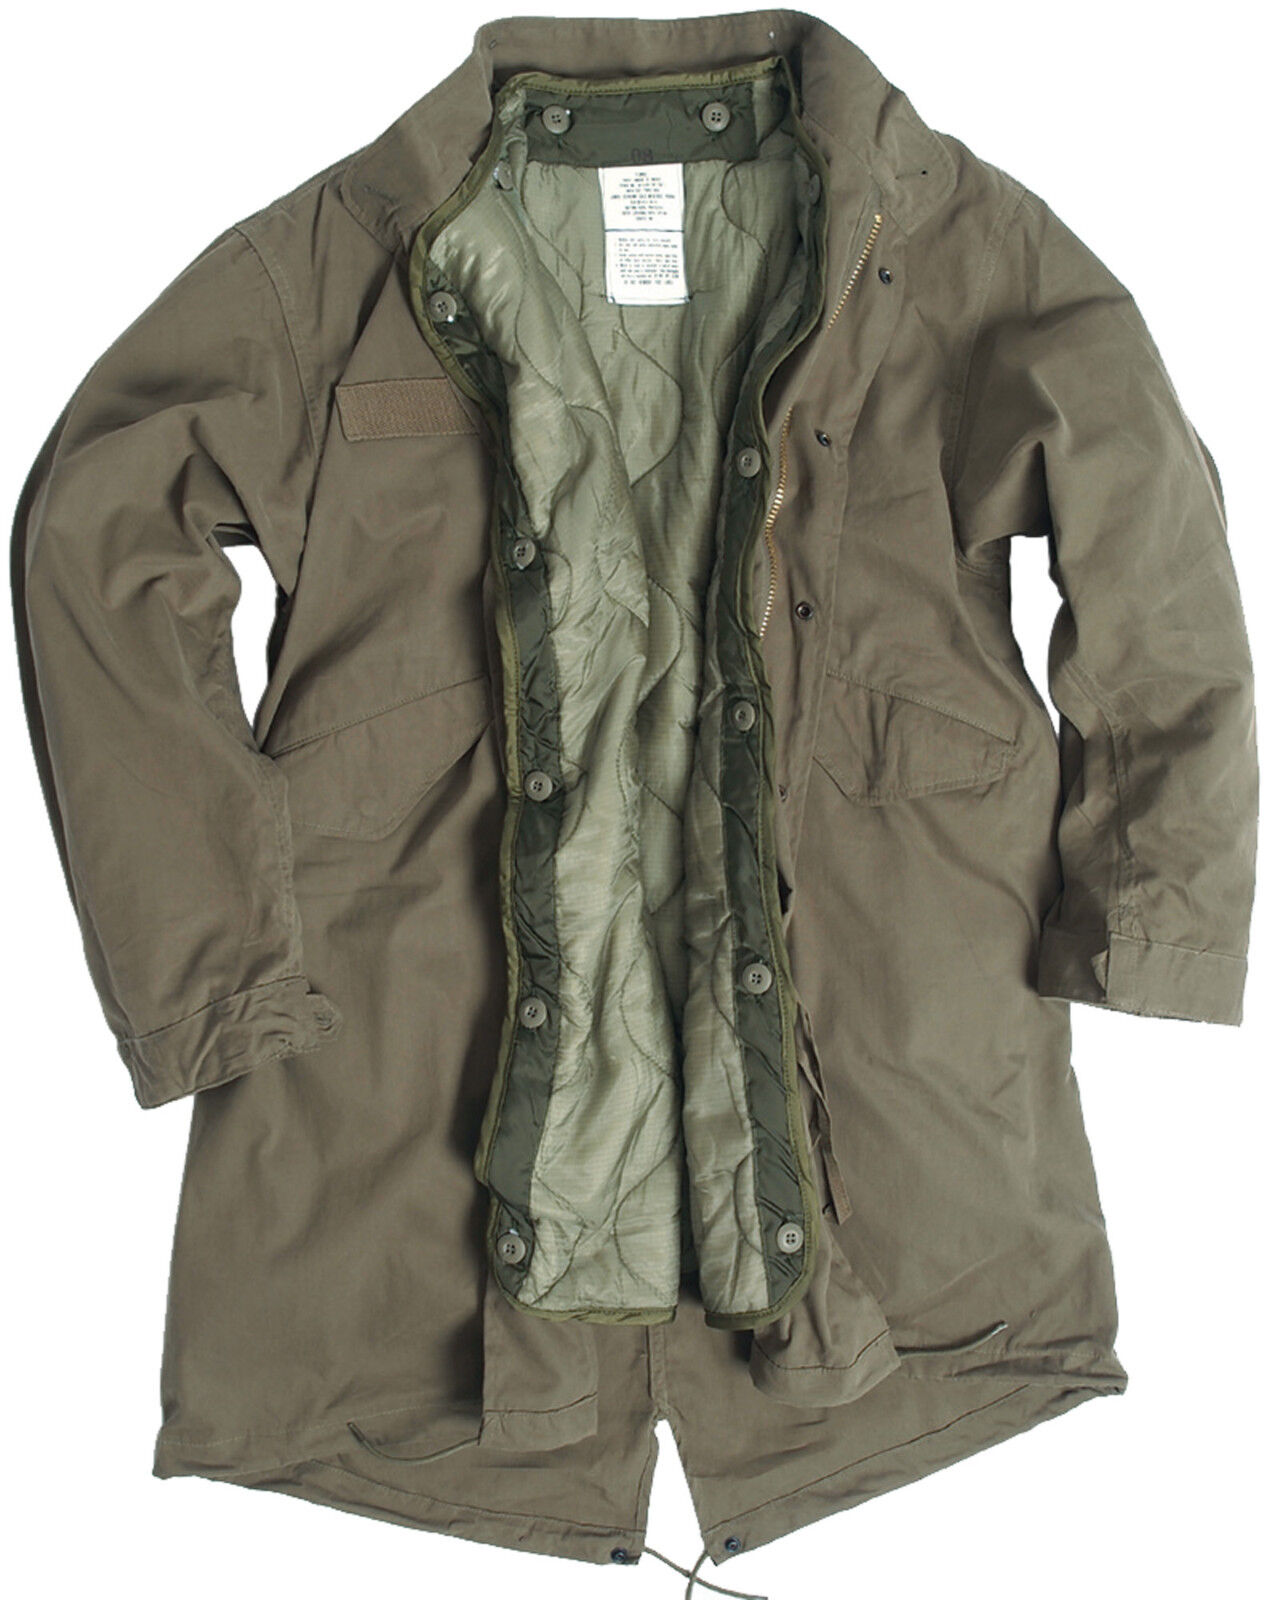 Details about US Army Olive Drab M65 Fishtail Winter Shell Parka Jacket  With Liner 79f0cb09ca3